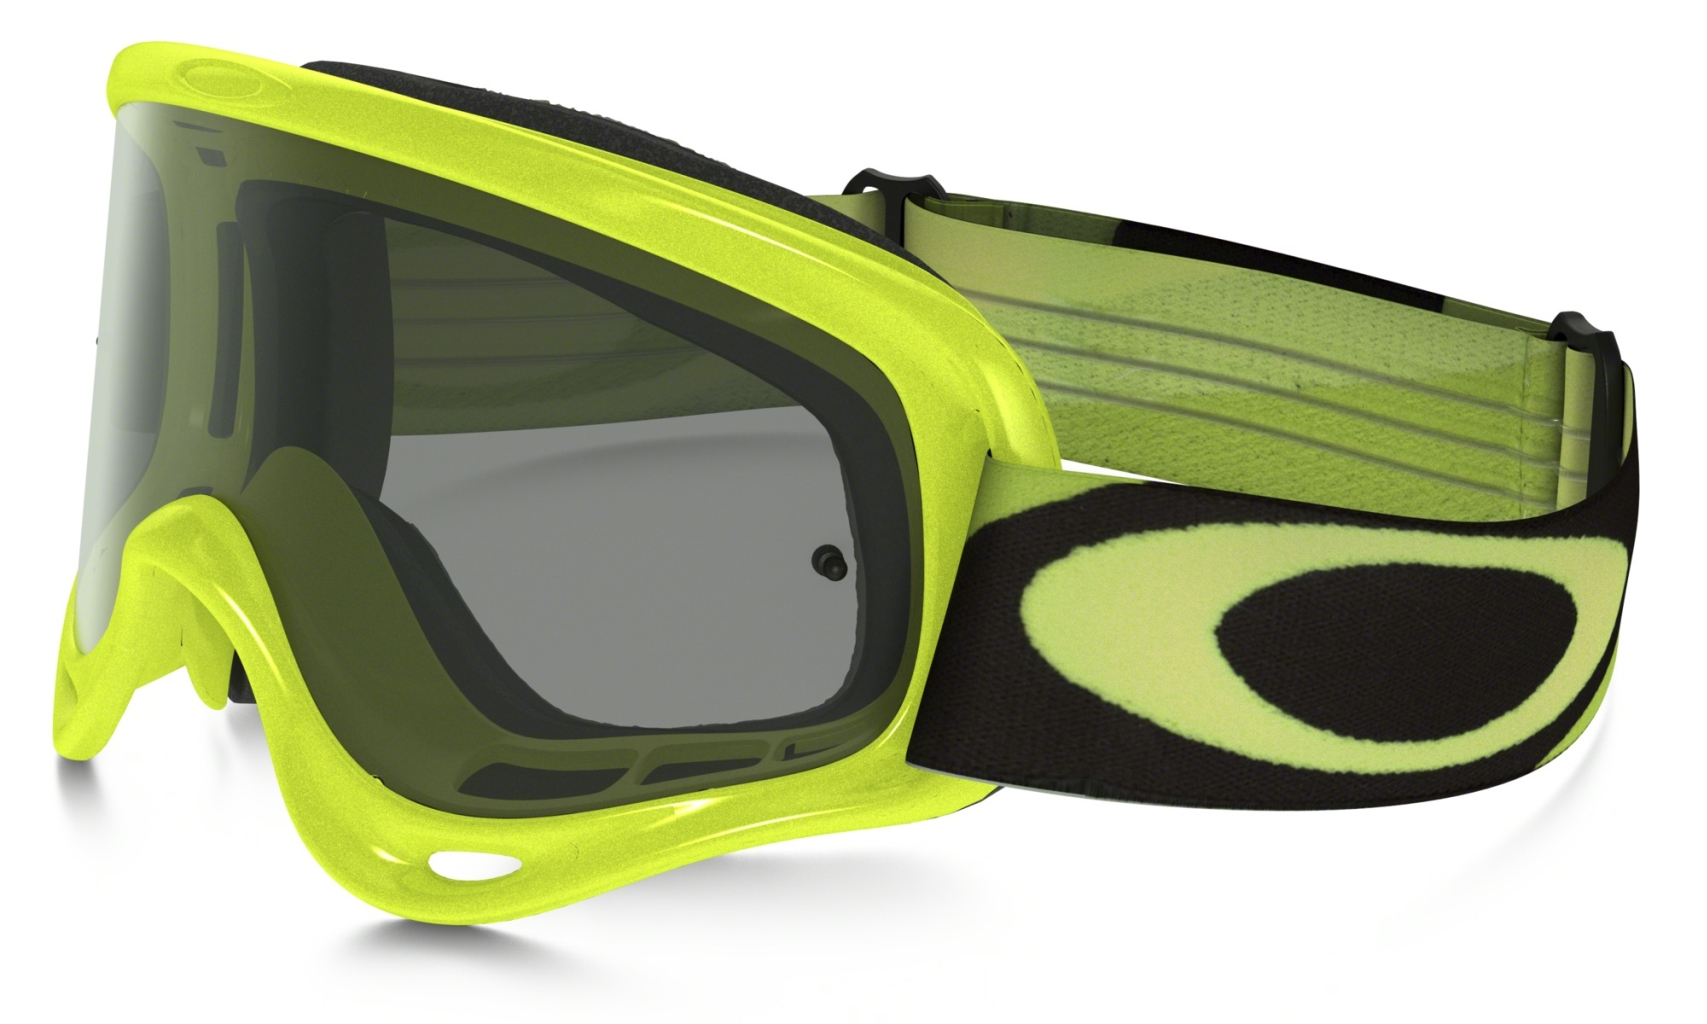 Oakley O Frame MX HeritageRacer Grn Yel w/DkGry-30